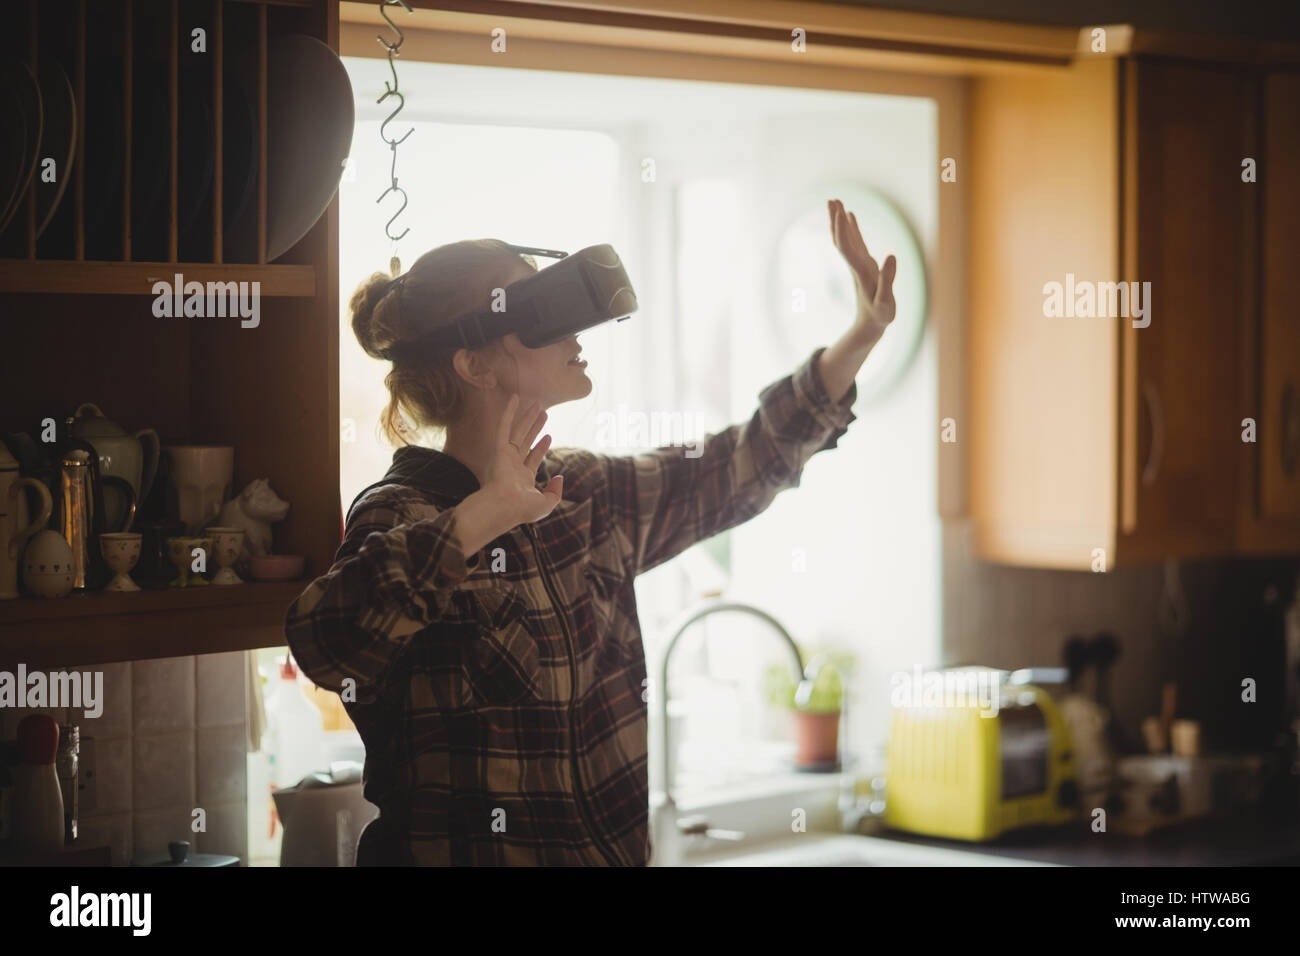 Woman experiencing virtual reality headset in kitchen - Stock Image